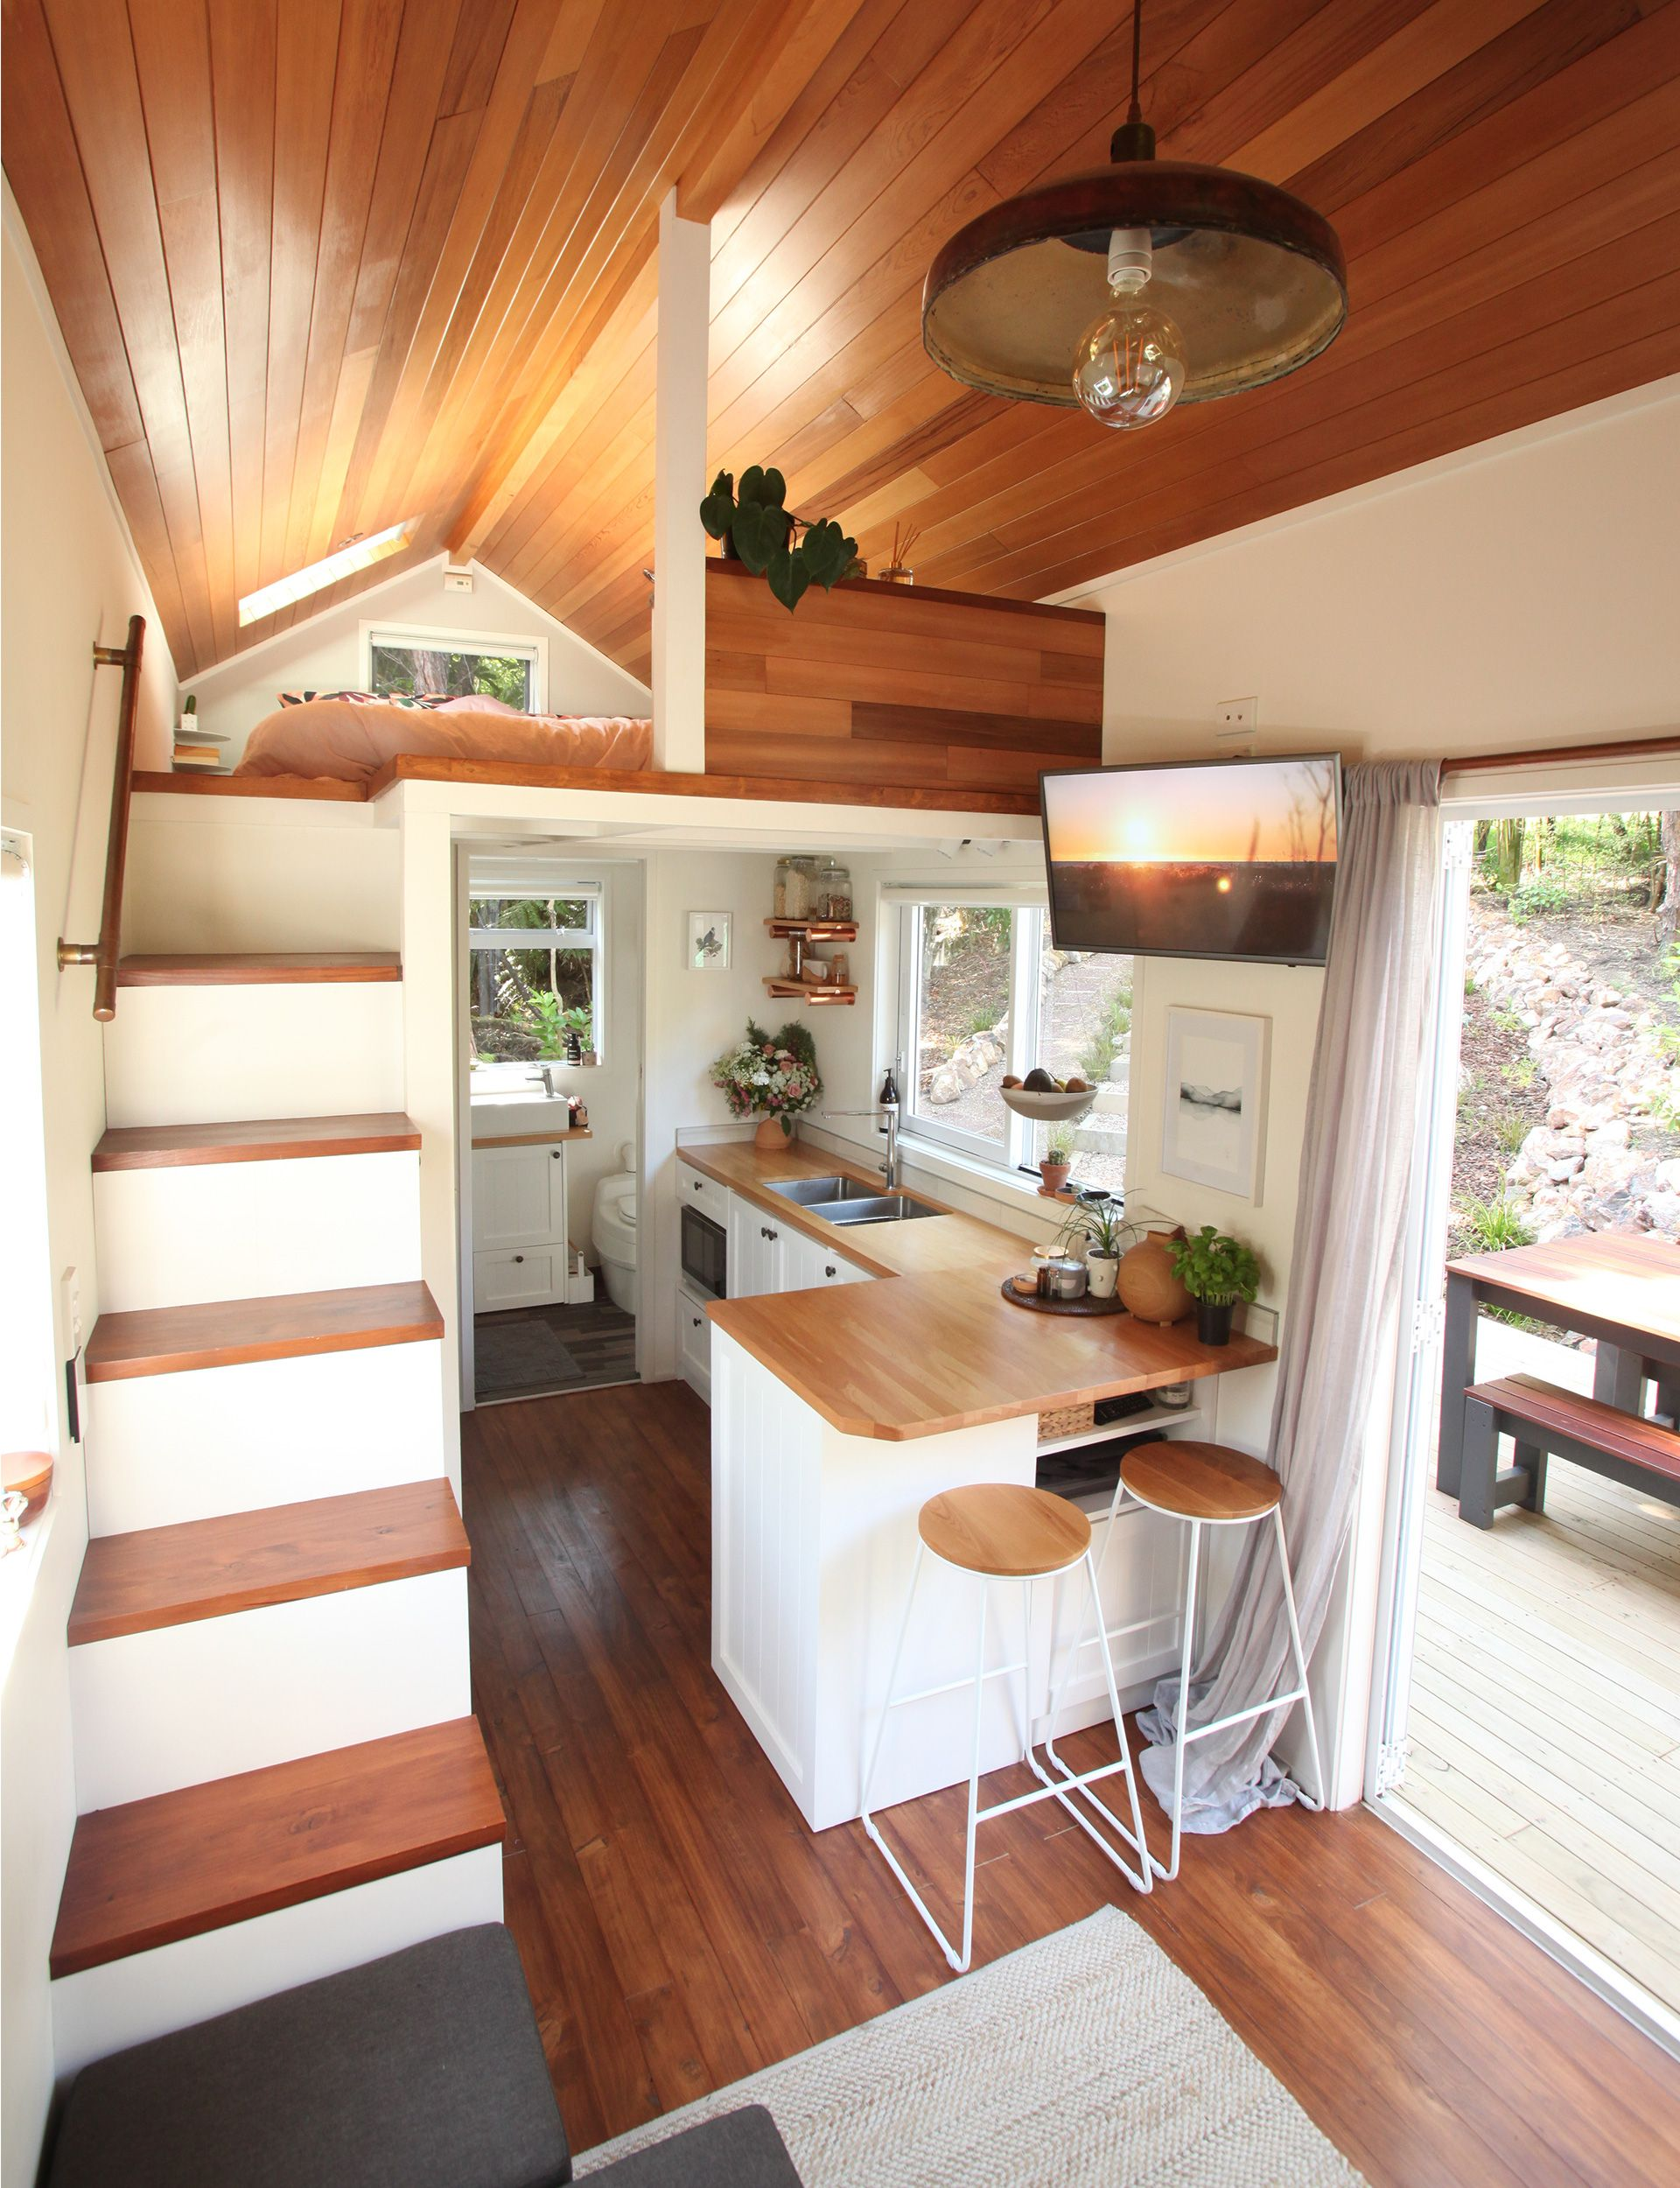 Small Cottage Interiors Cozy Home Office Cottage: Inside A Tiny Home On Waiheke Where Modern Design Meets Cottage Style